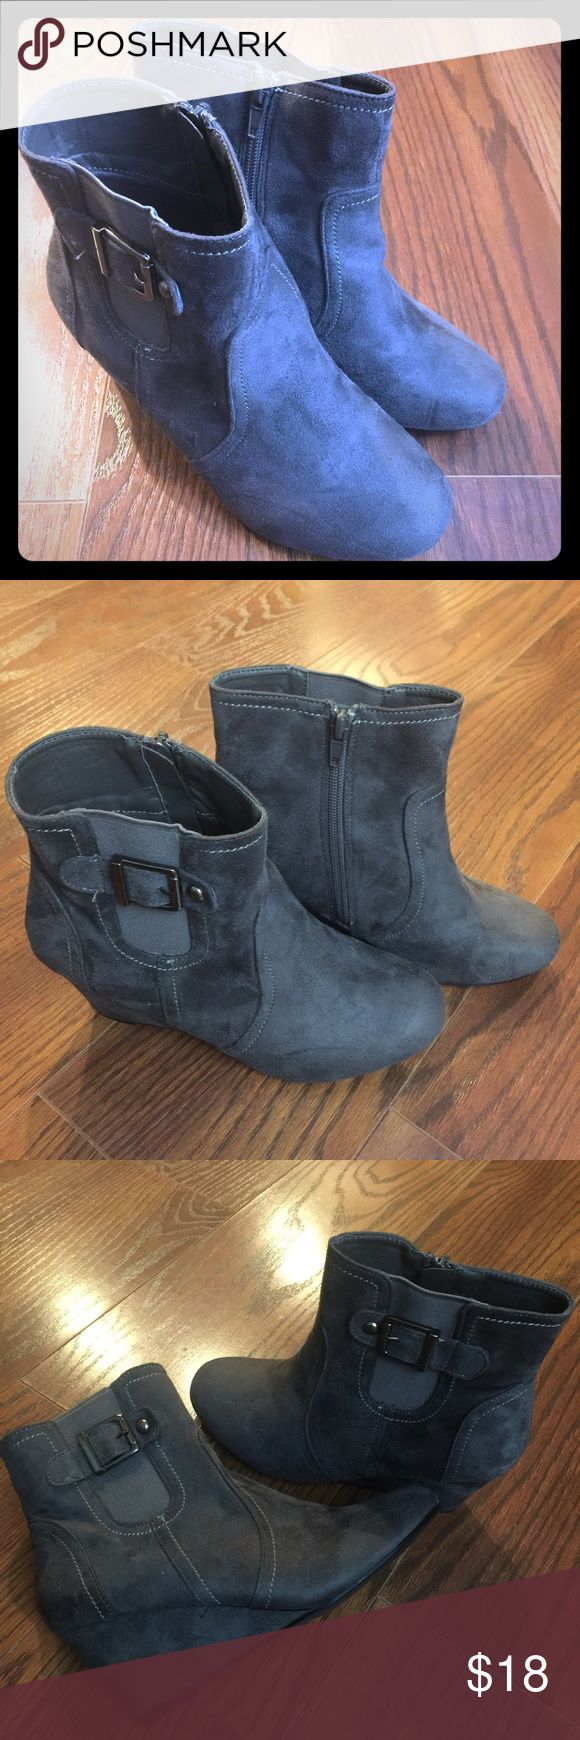 """Bonnibel Woman's Gray Wedge Boots Size 6 Bonnibel woman's gray wedge boots  Zipper to easily slip on  Size 6 Decorative buckle on the outer side  Wedge boot with a 3 1/4"""" heel  Faux suede material  Excellent condition Bonnibel Shoes Ankle Boots & Booties"""